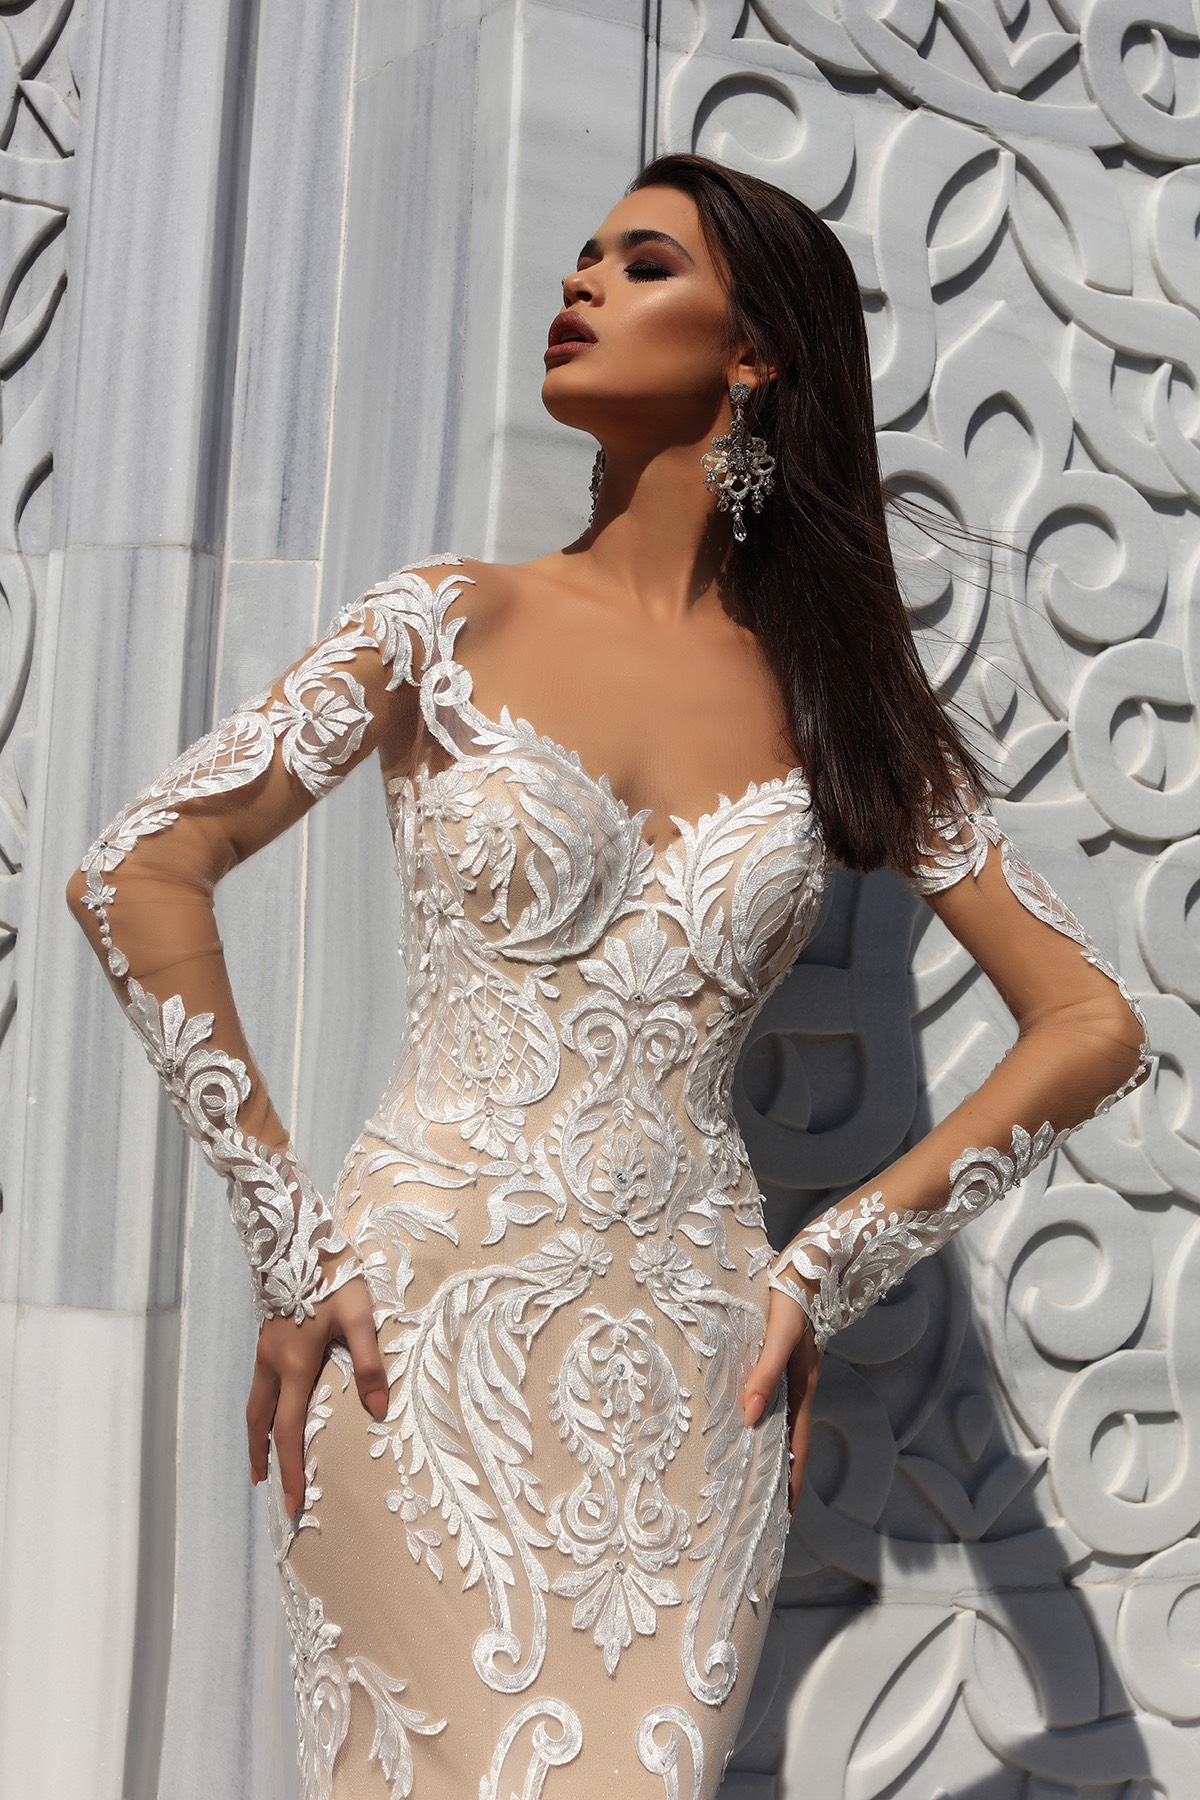 POLLARDI BRIDAL – HURREM